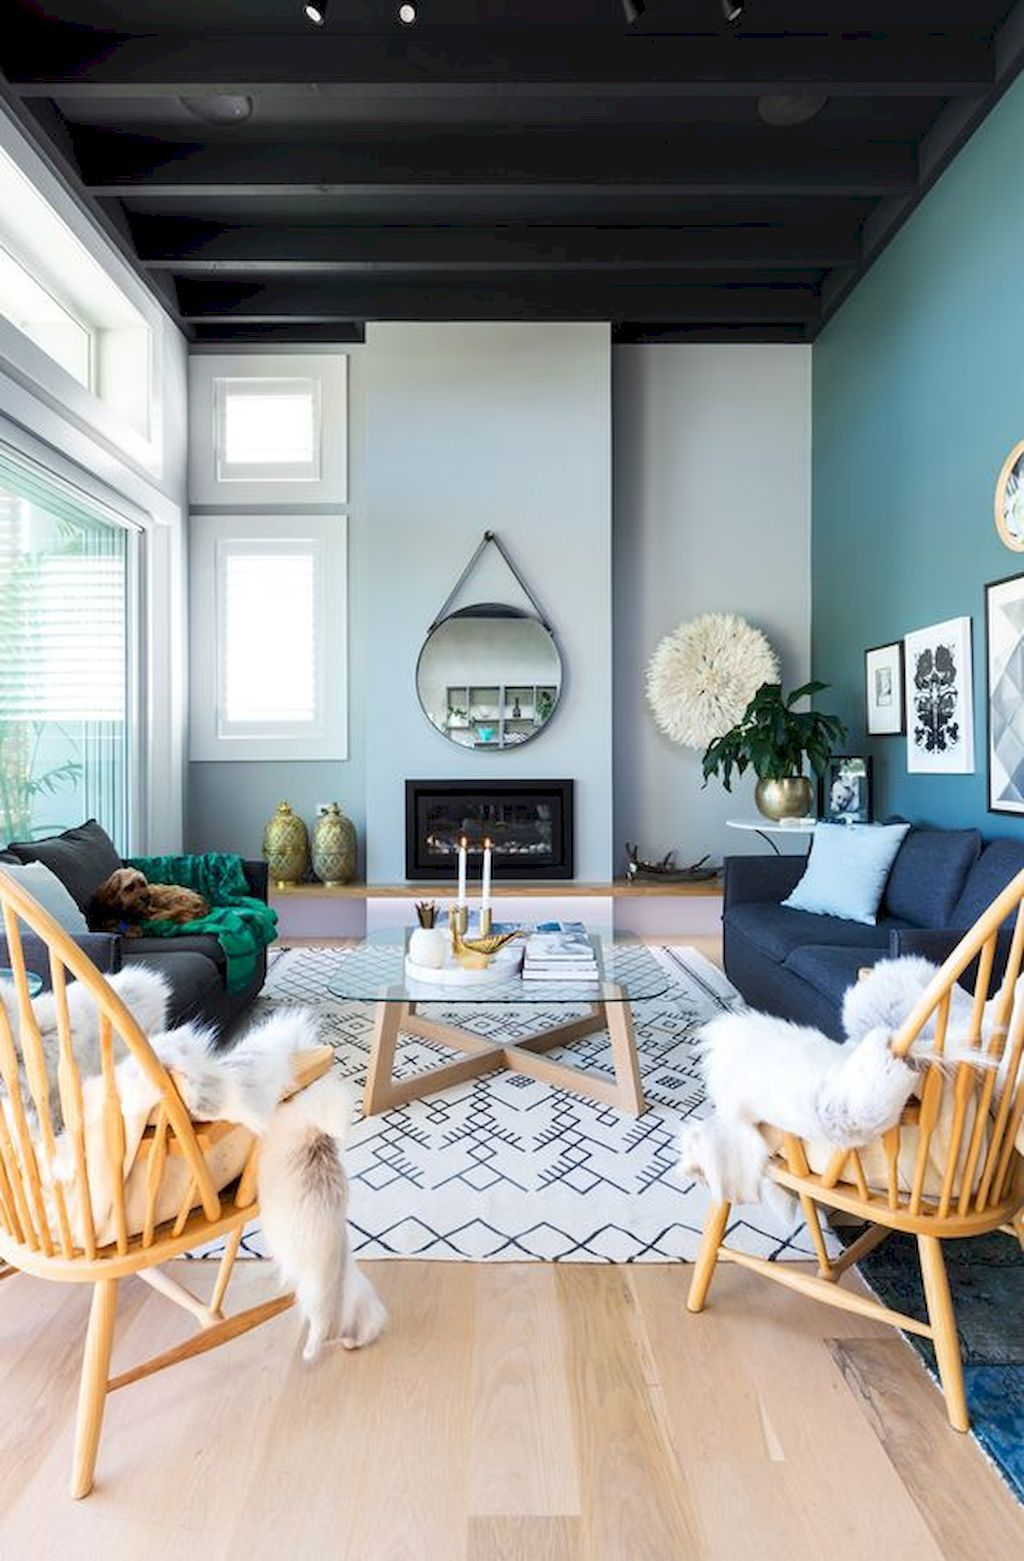 60 Modern Eclectic Living Room Decorating Ideas 8 Cozy